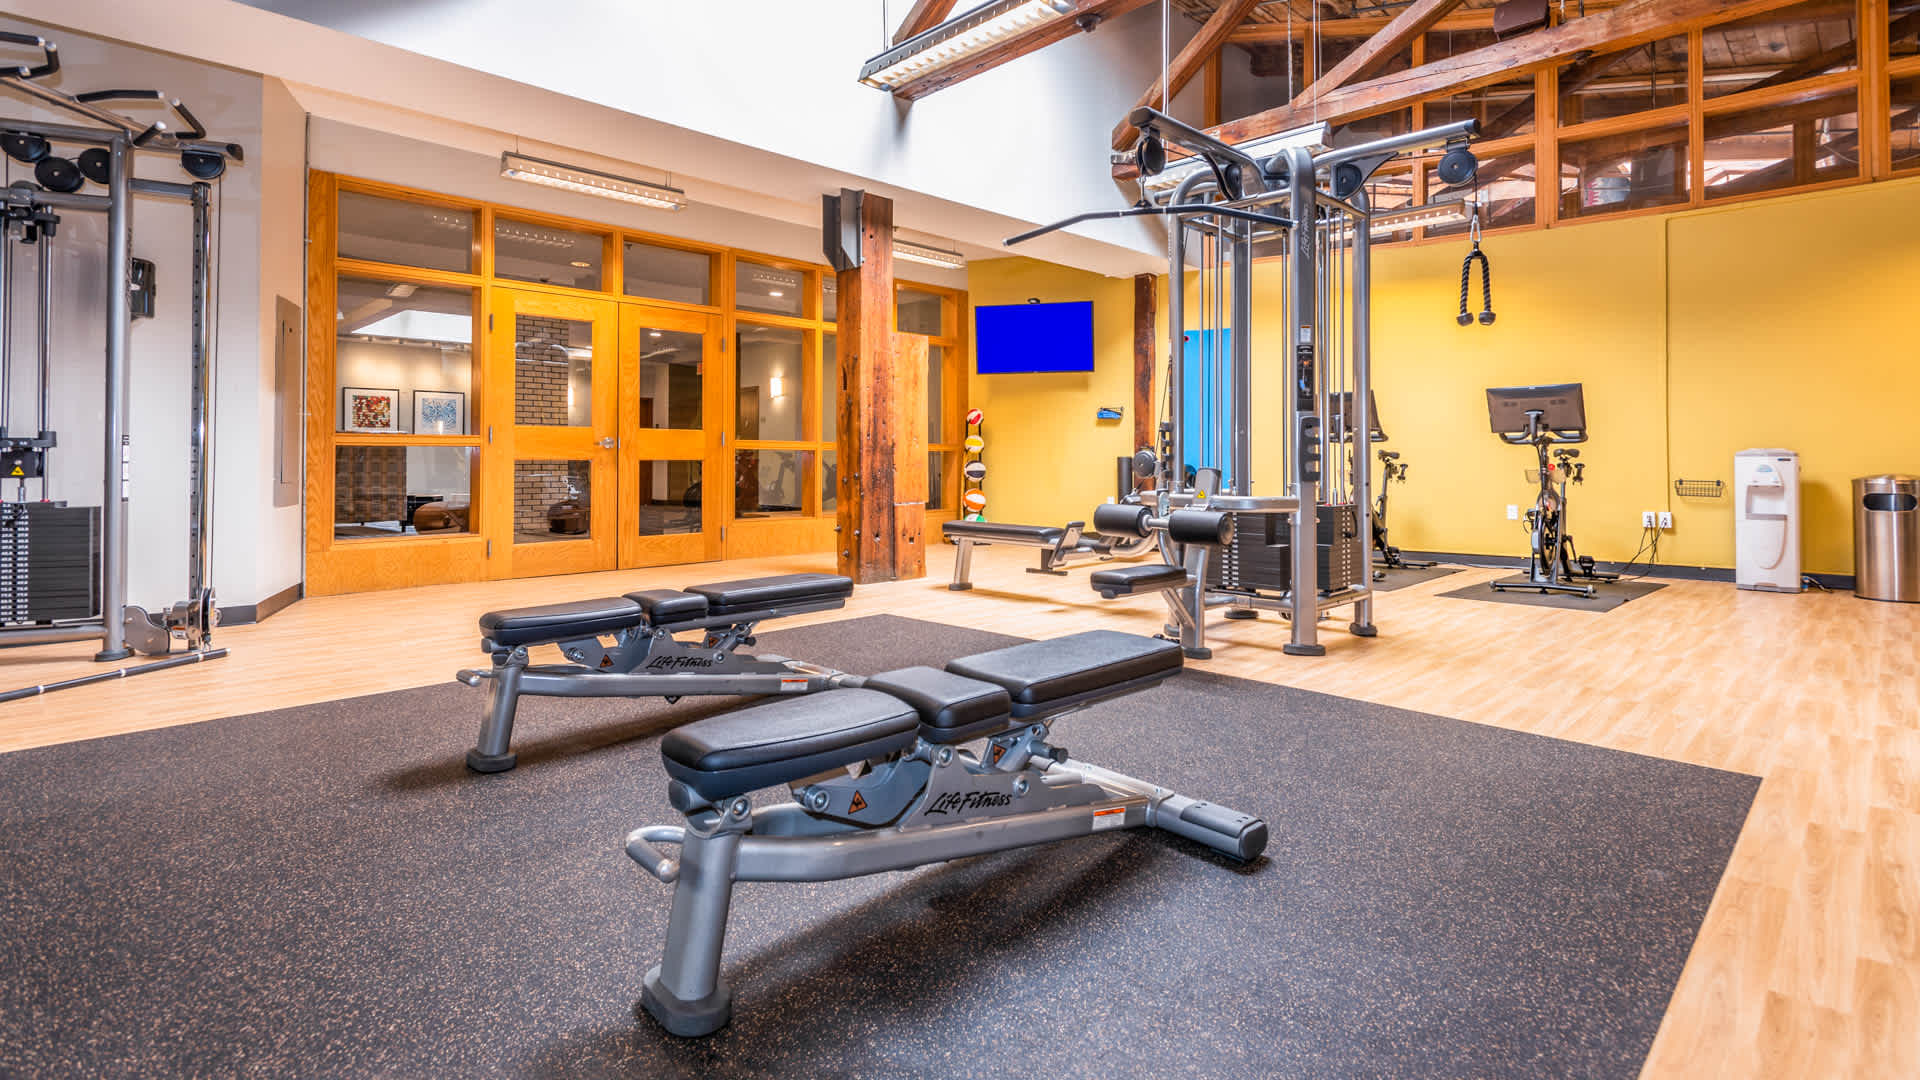 Lofts at kendall square apartments fitness center